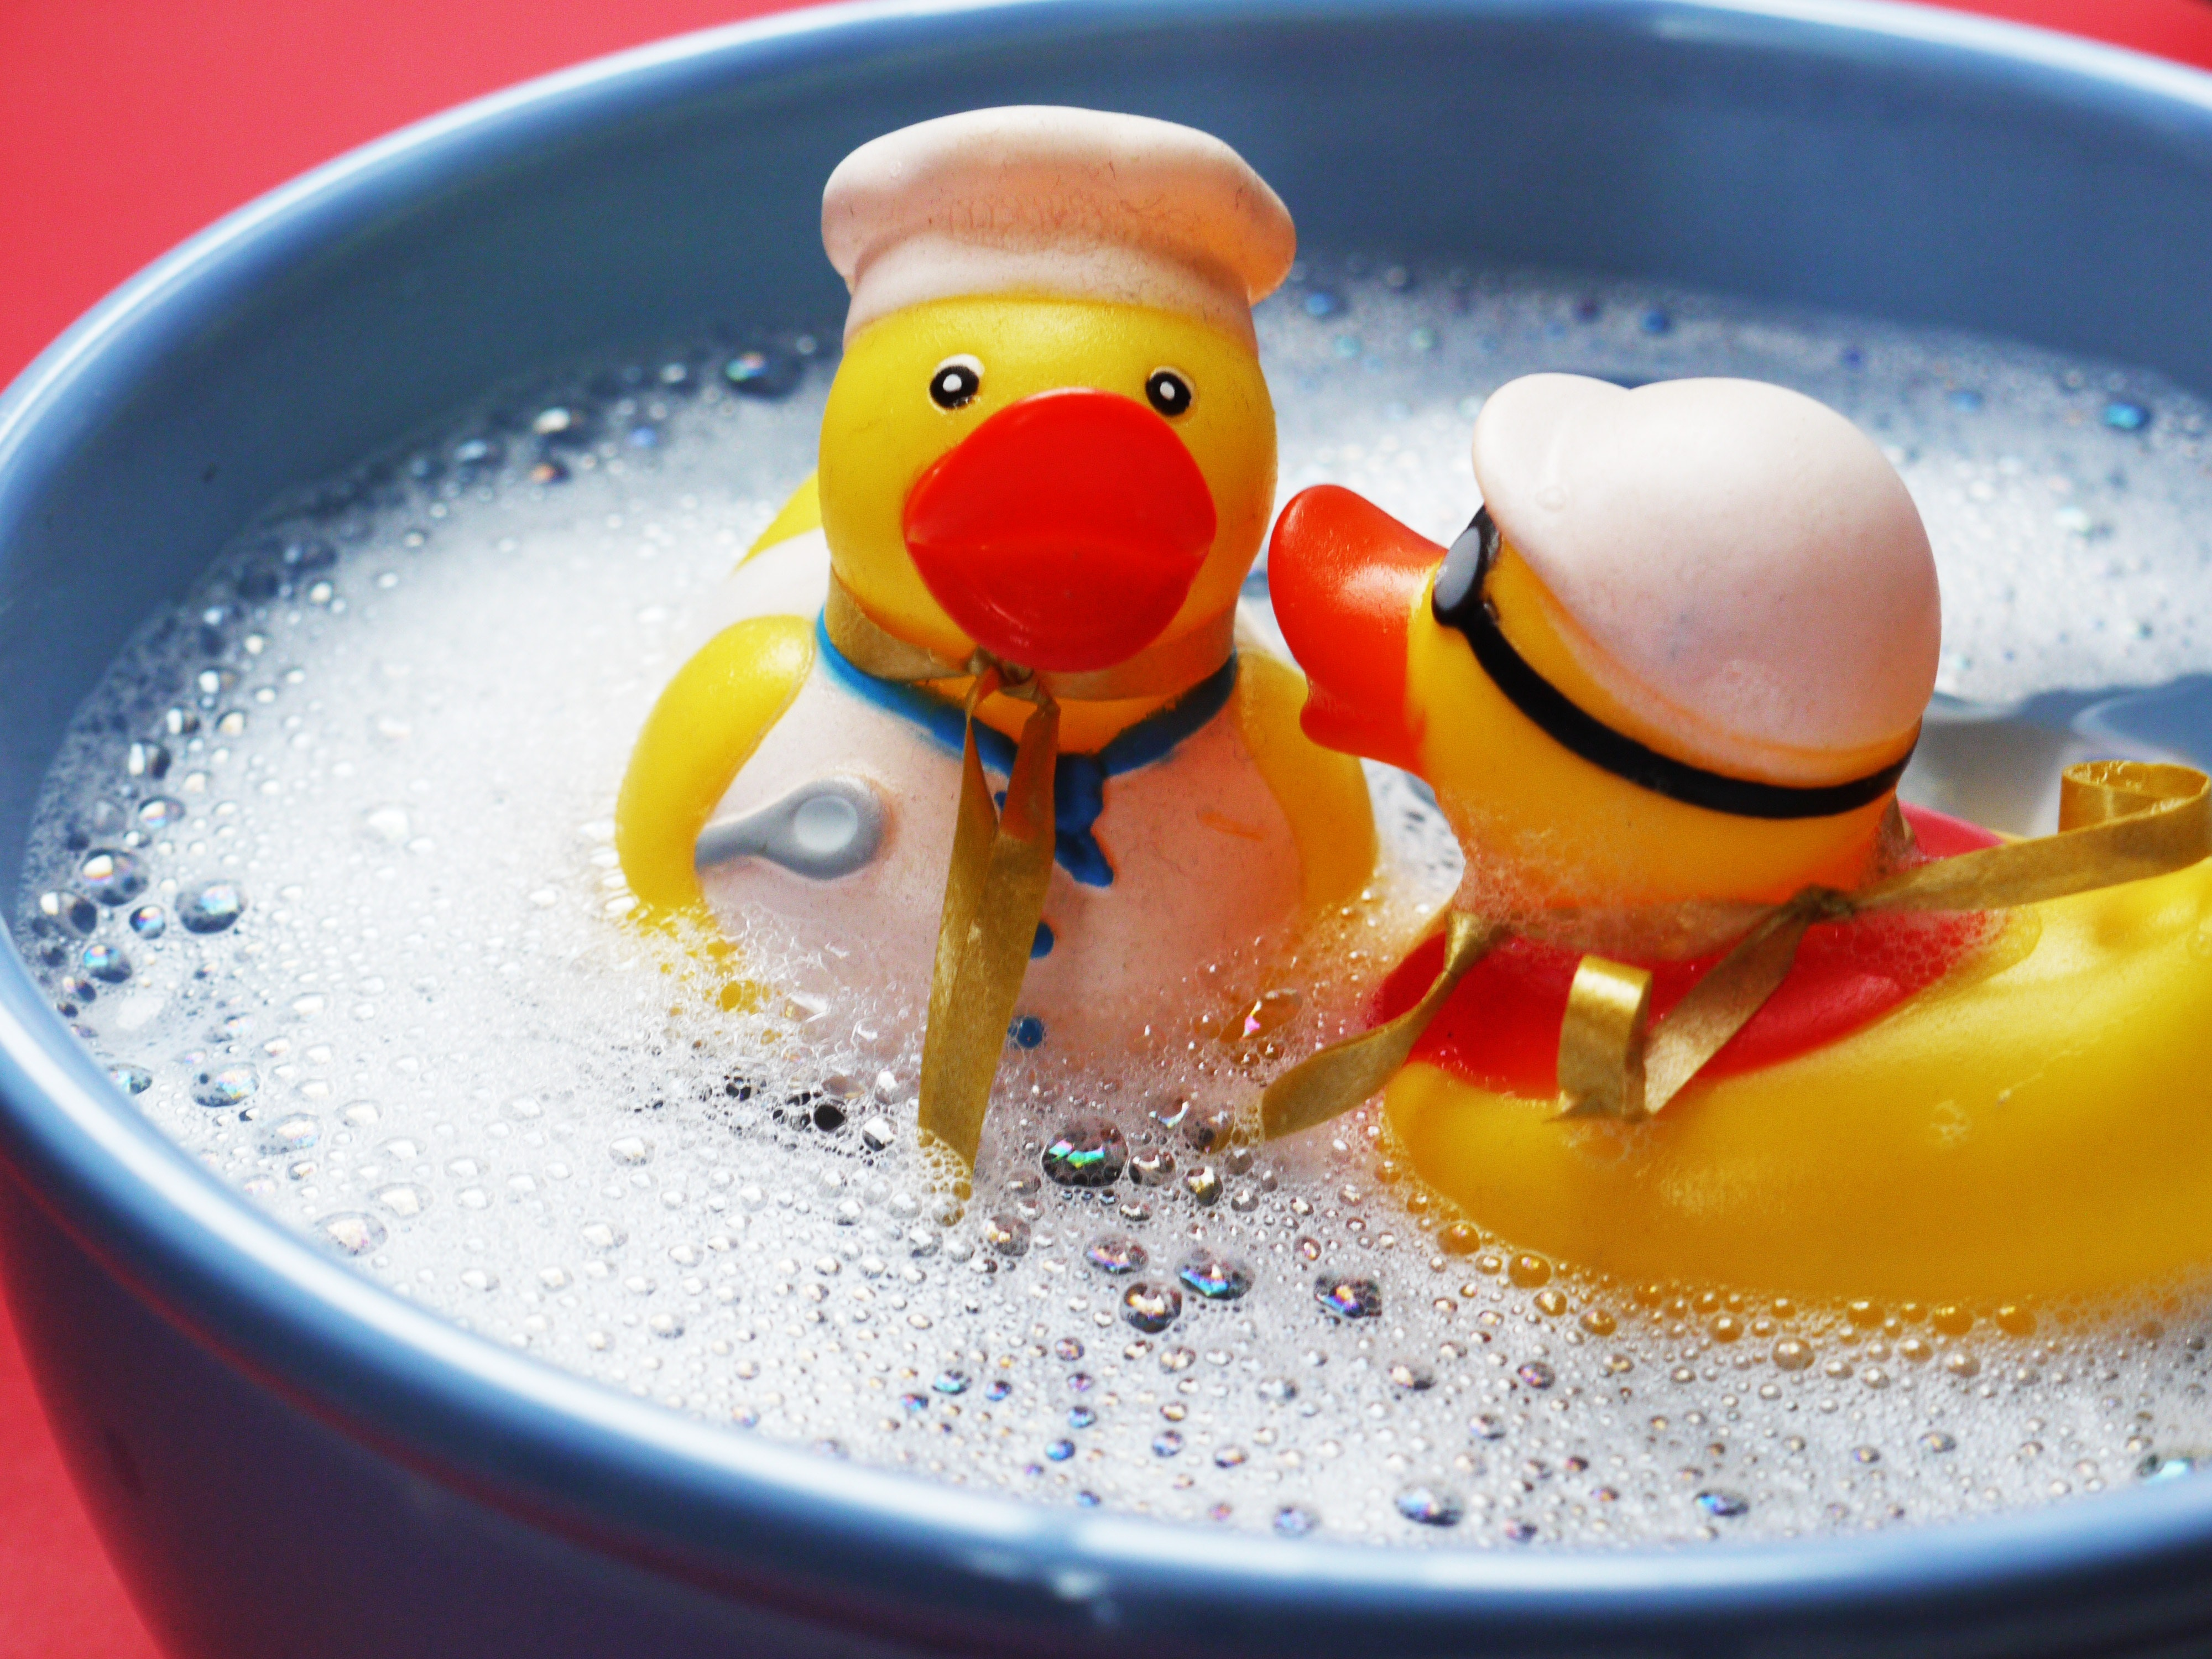 2 Rubber Ducky On Blue Ceramic Bowl 183 Free Stock Photo